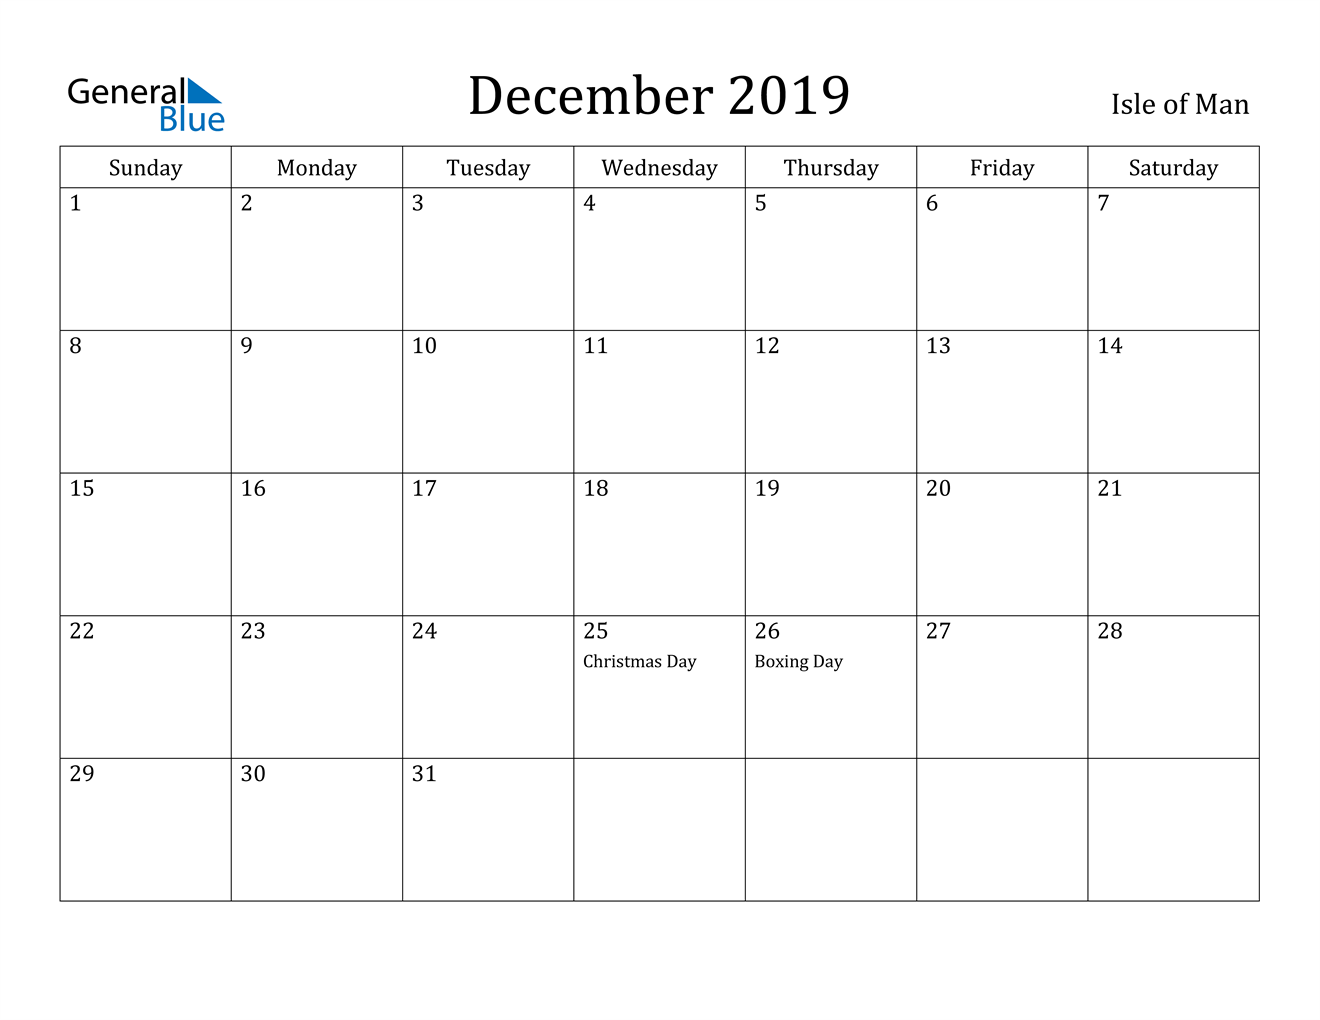 Image of December 2019 Isle of Man Calendar with Holidays Calendar